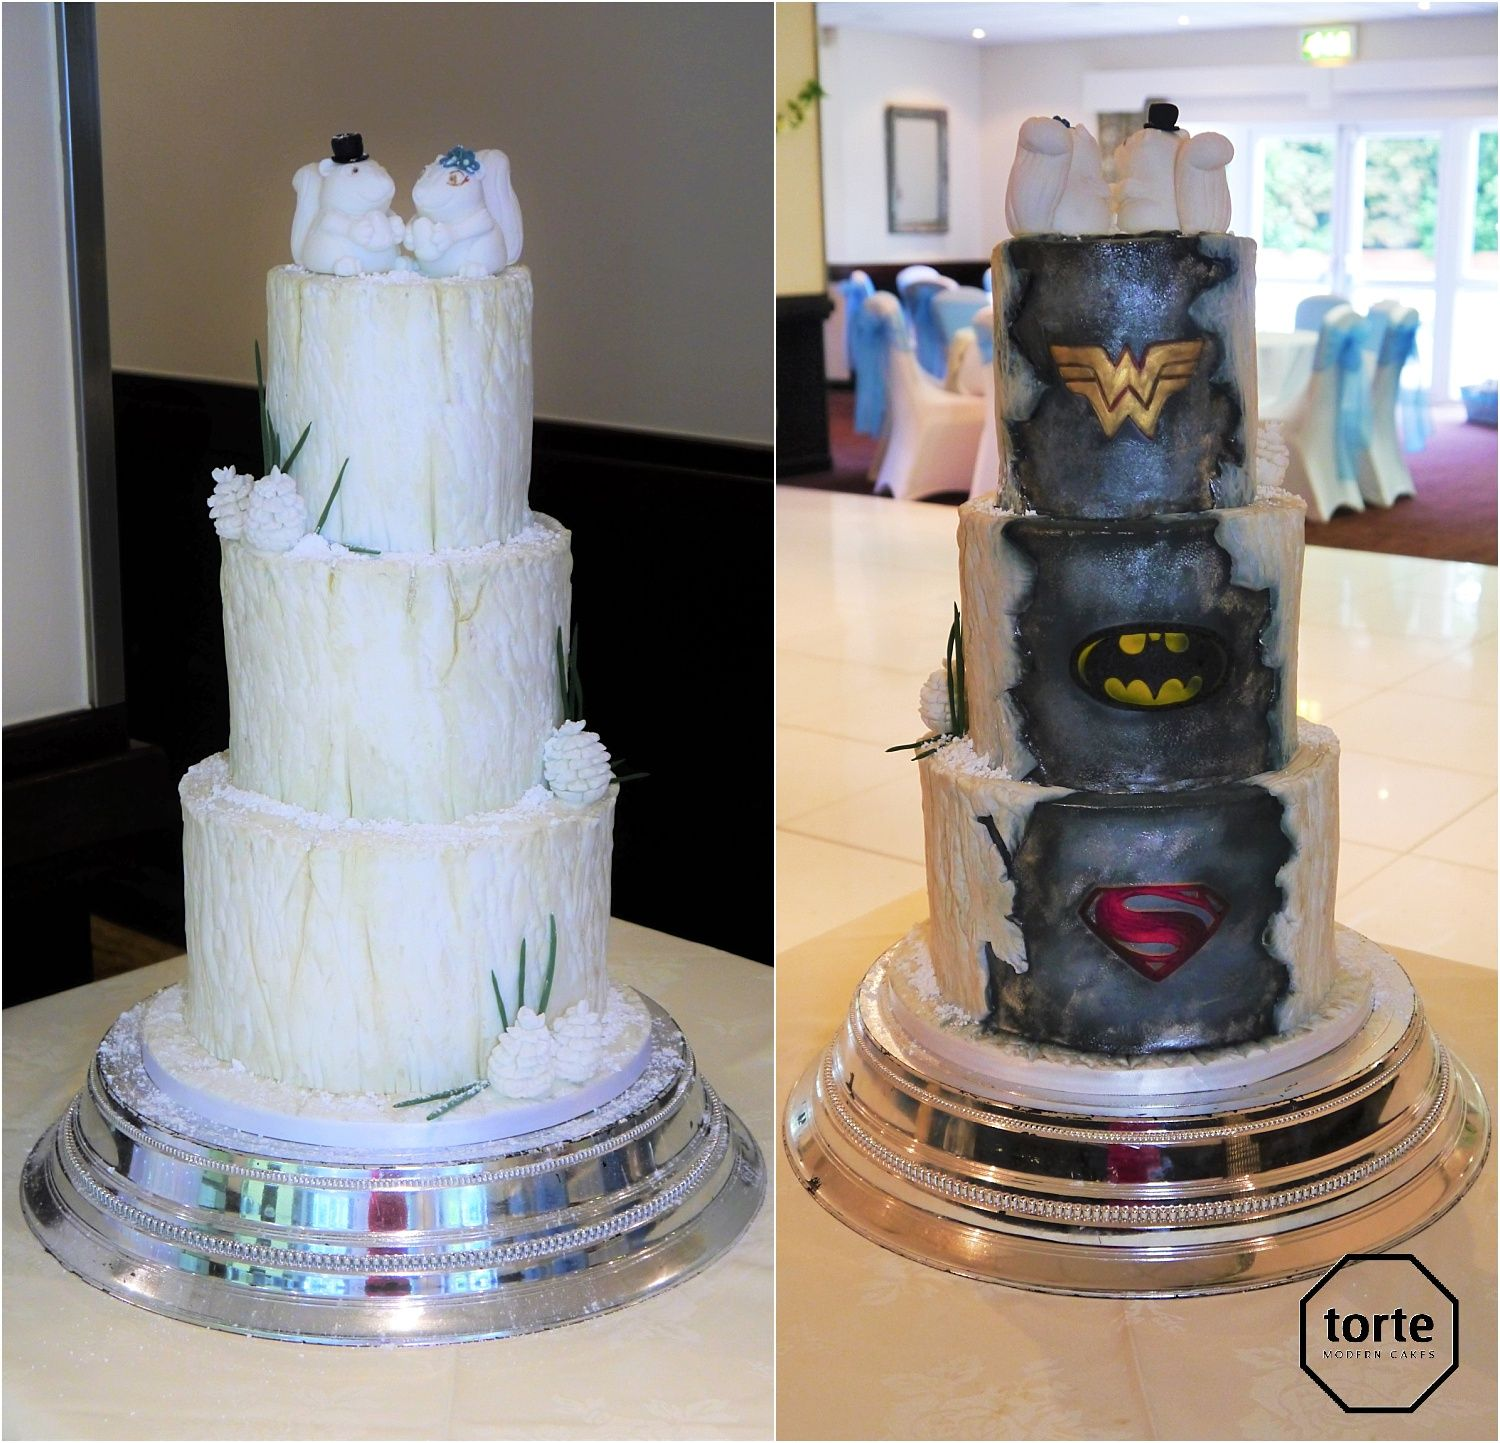 Luxury Modern Cakes Made In Sheffield Iced Wedding Cakes Superhero Wedding Cake Batman Wedding Cakes Superhero Wedding